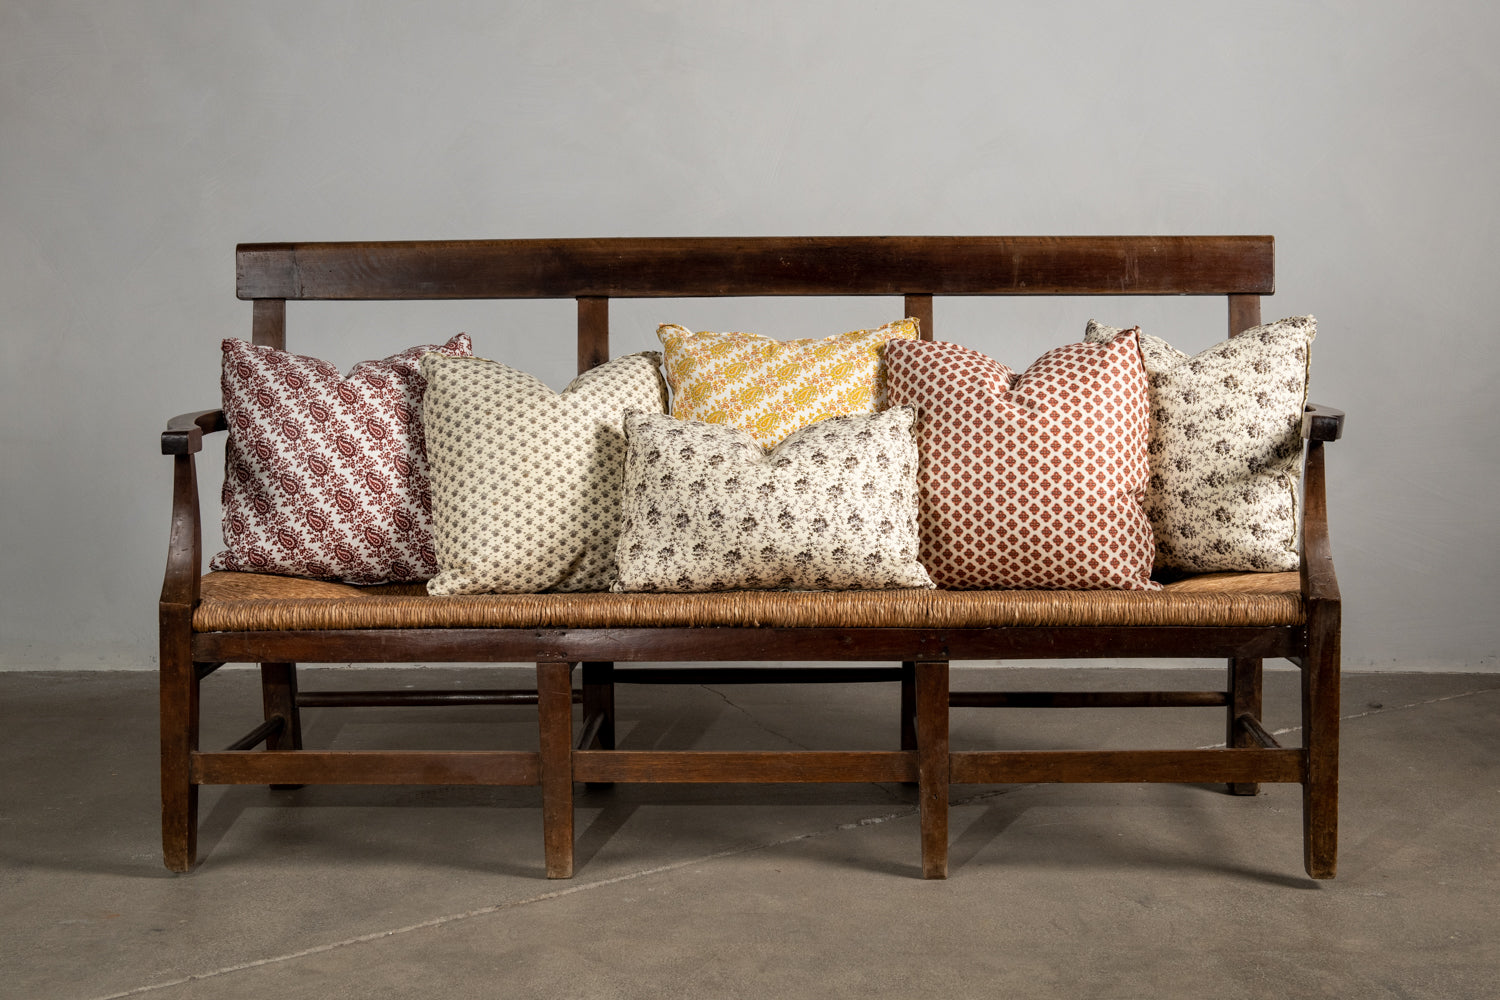 Assorted Nickey Kehoe Collection Pillows on a bench.